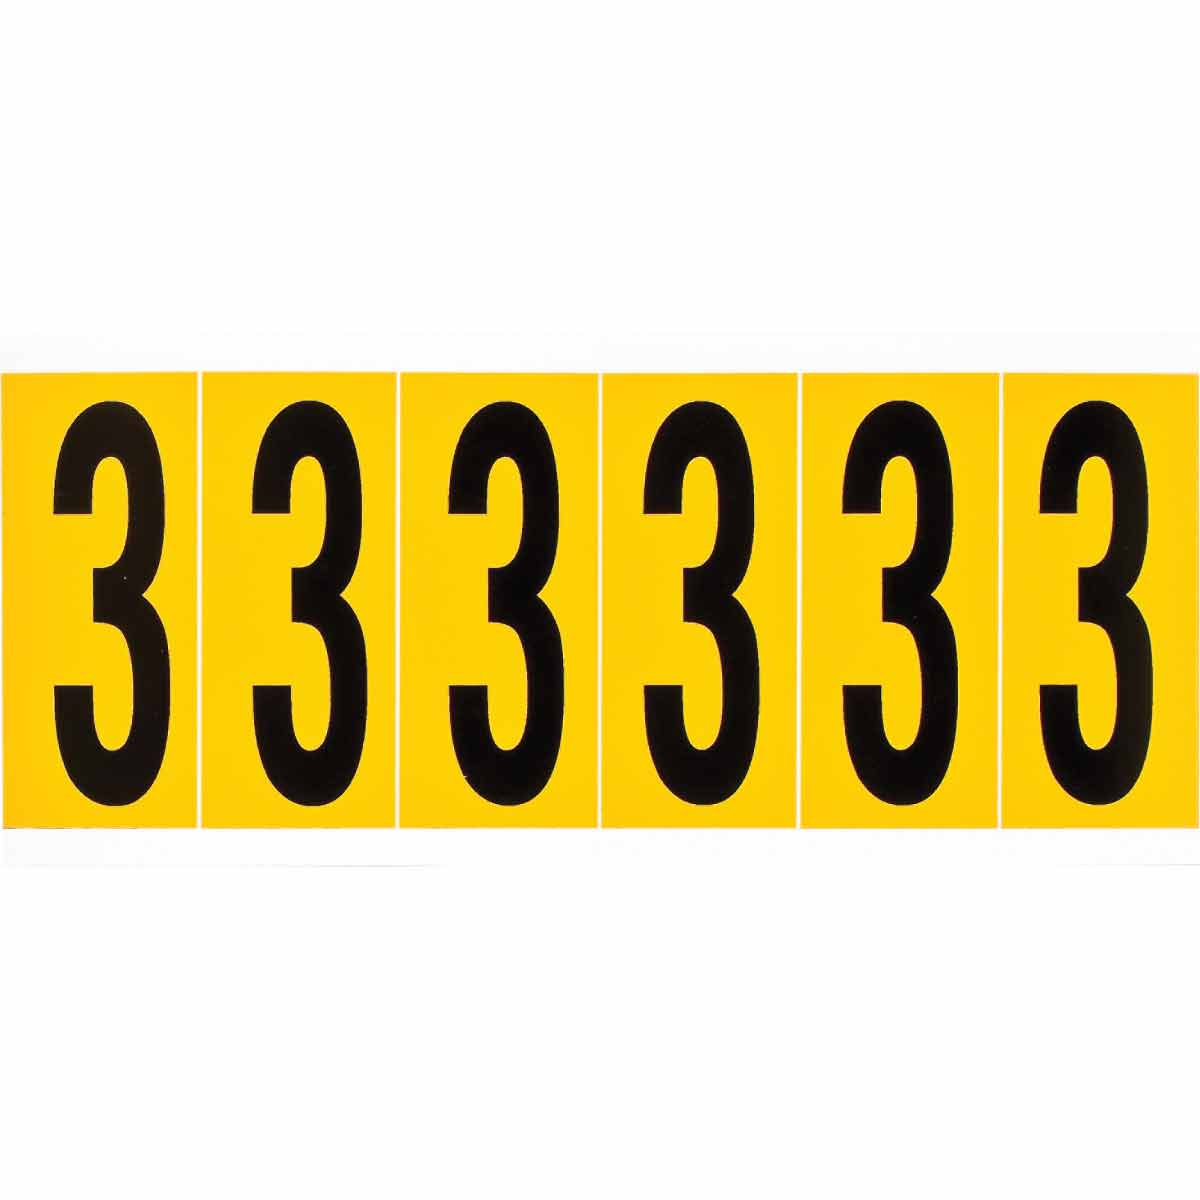 BRADY 1550-3 15 Series Number &Letter Card